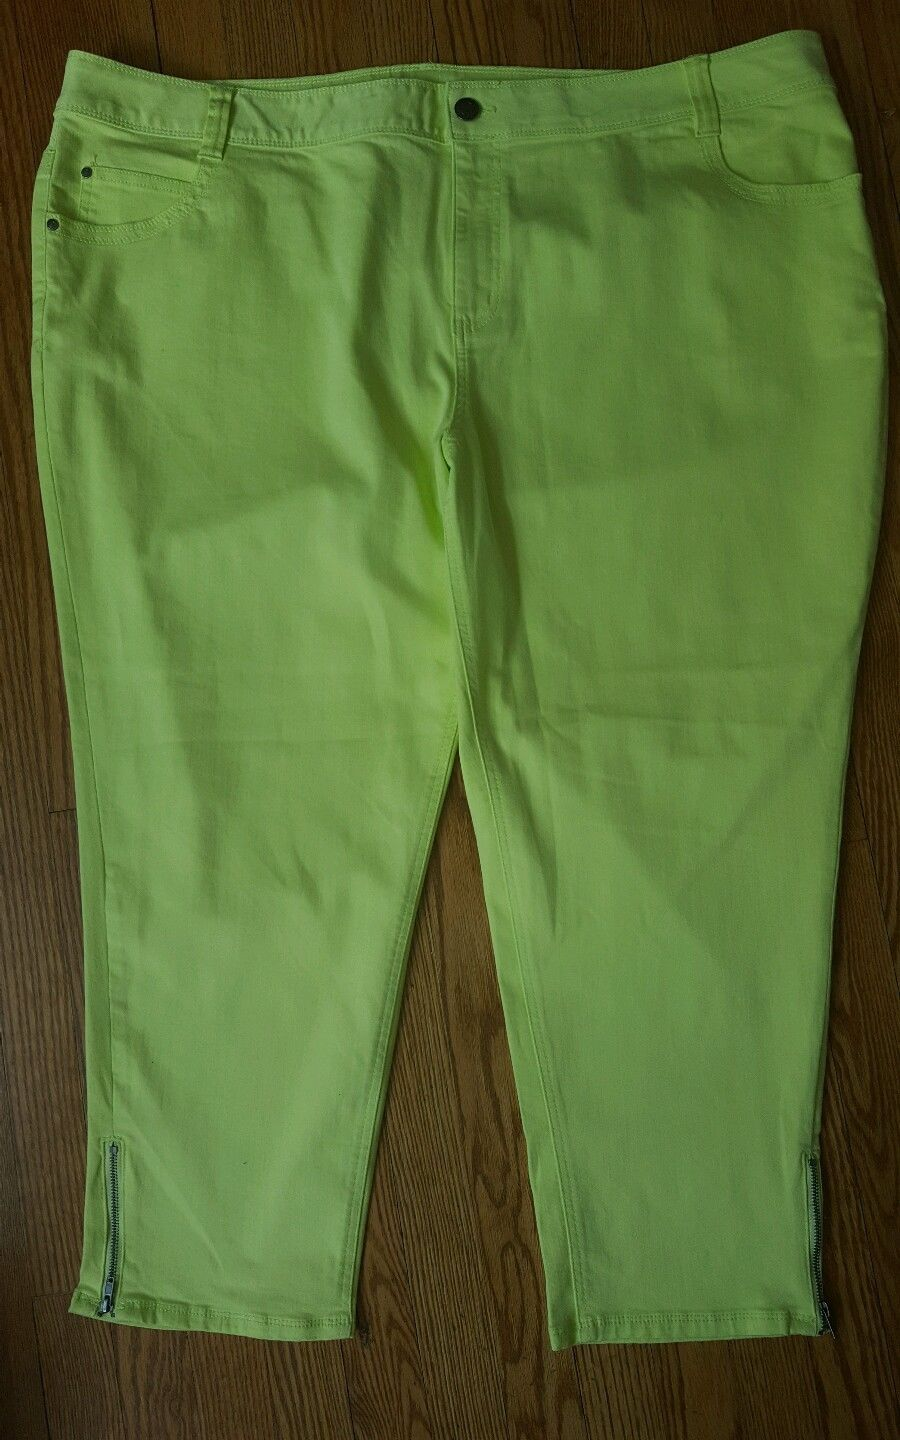 LANE BRYANT Womens 28 Plus Siz Lime green Genius Fit Ankle Zip stretch pants New